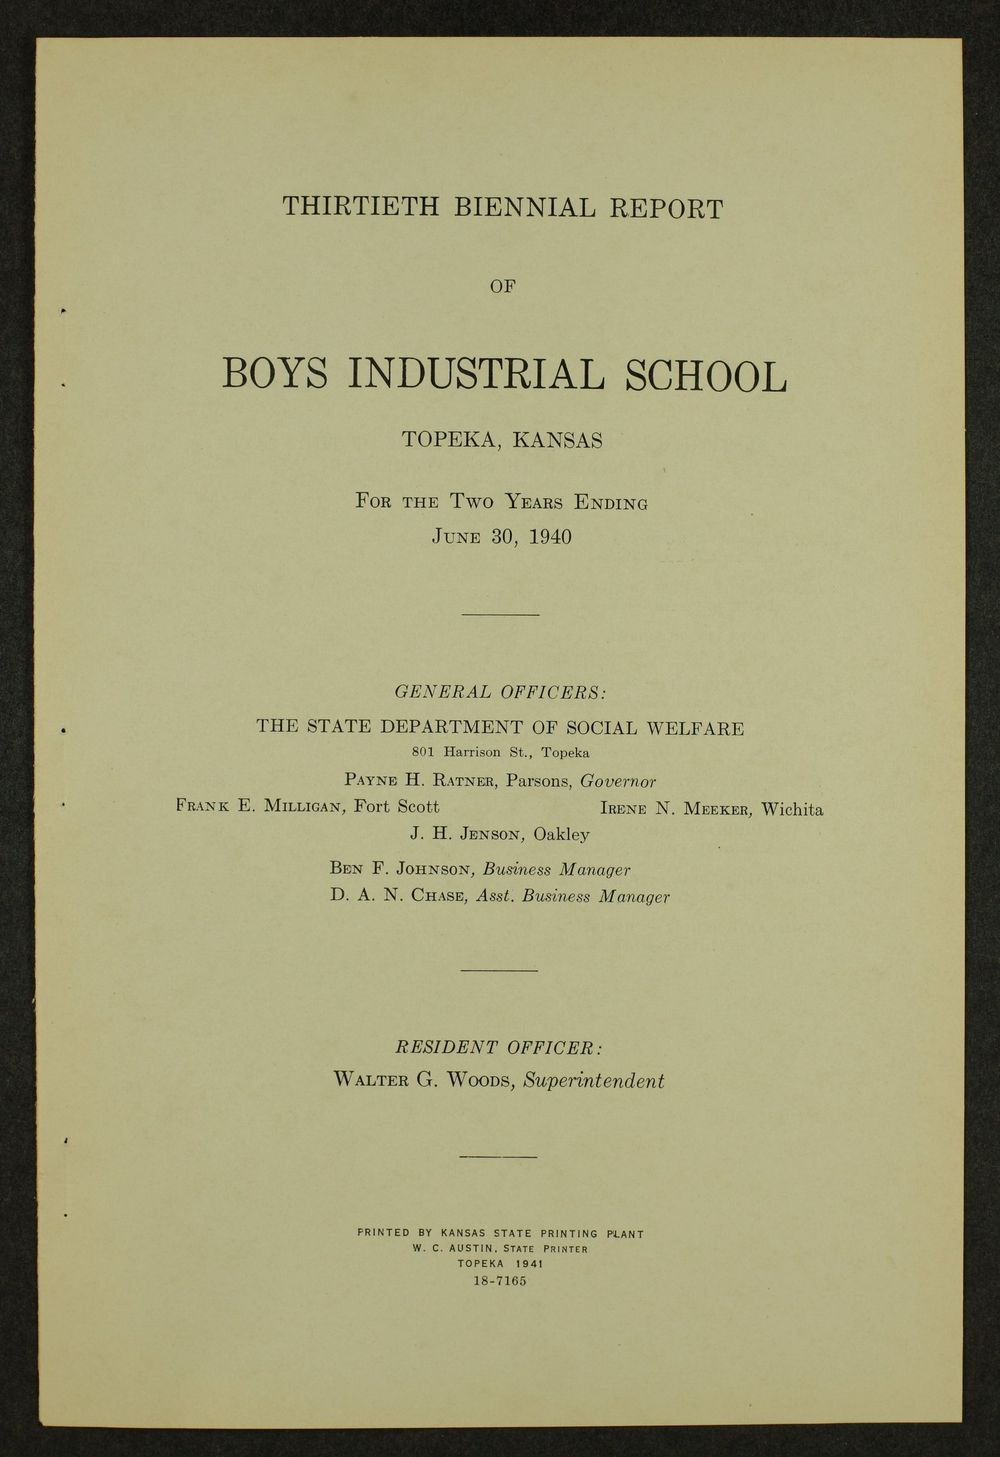 Biennial report of the Boys Industrial School, 1940 - 1